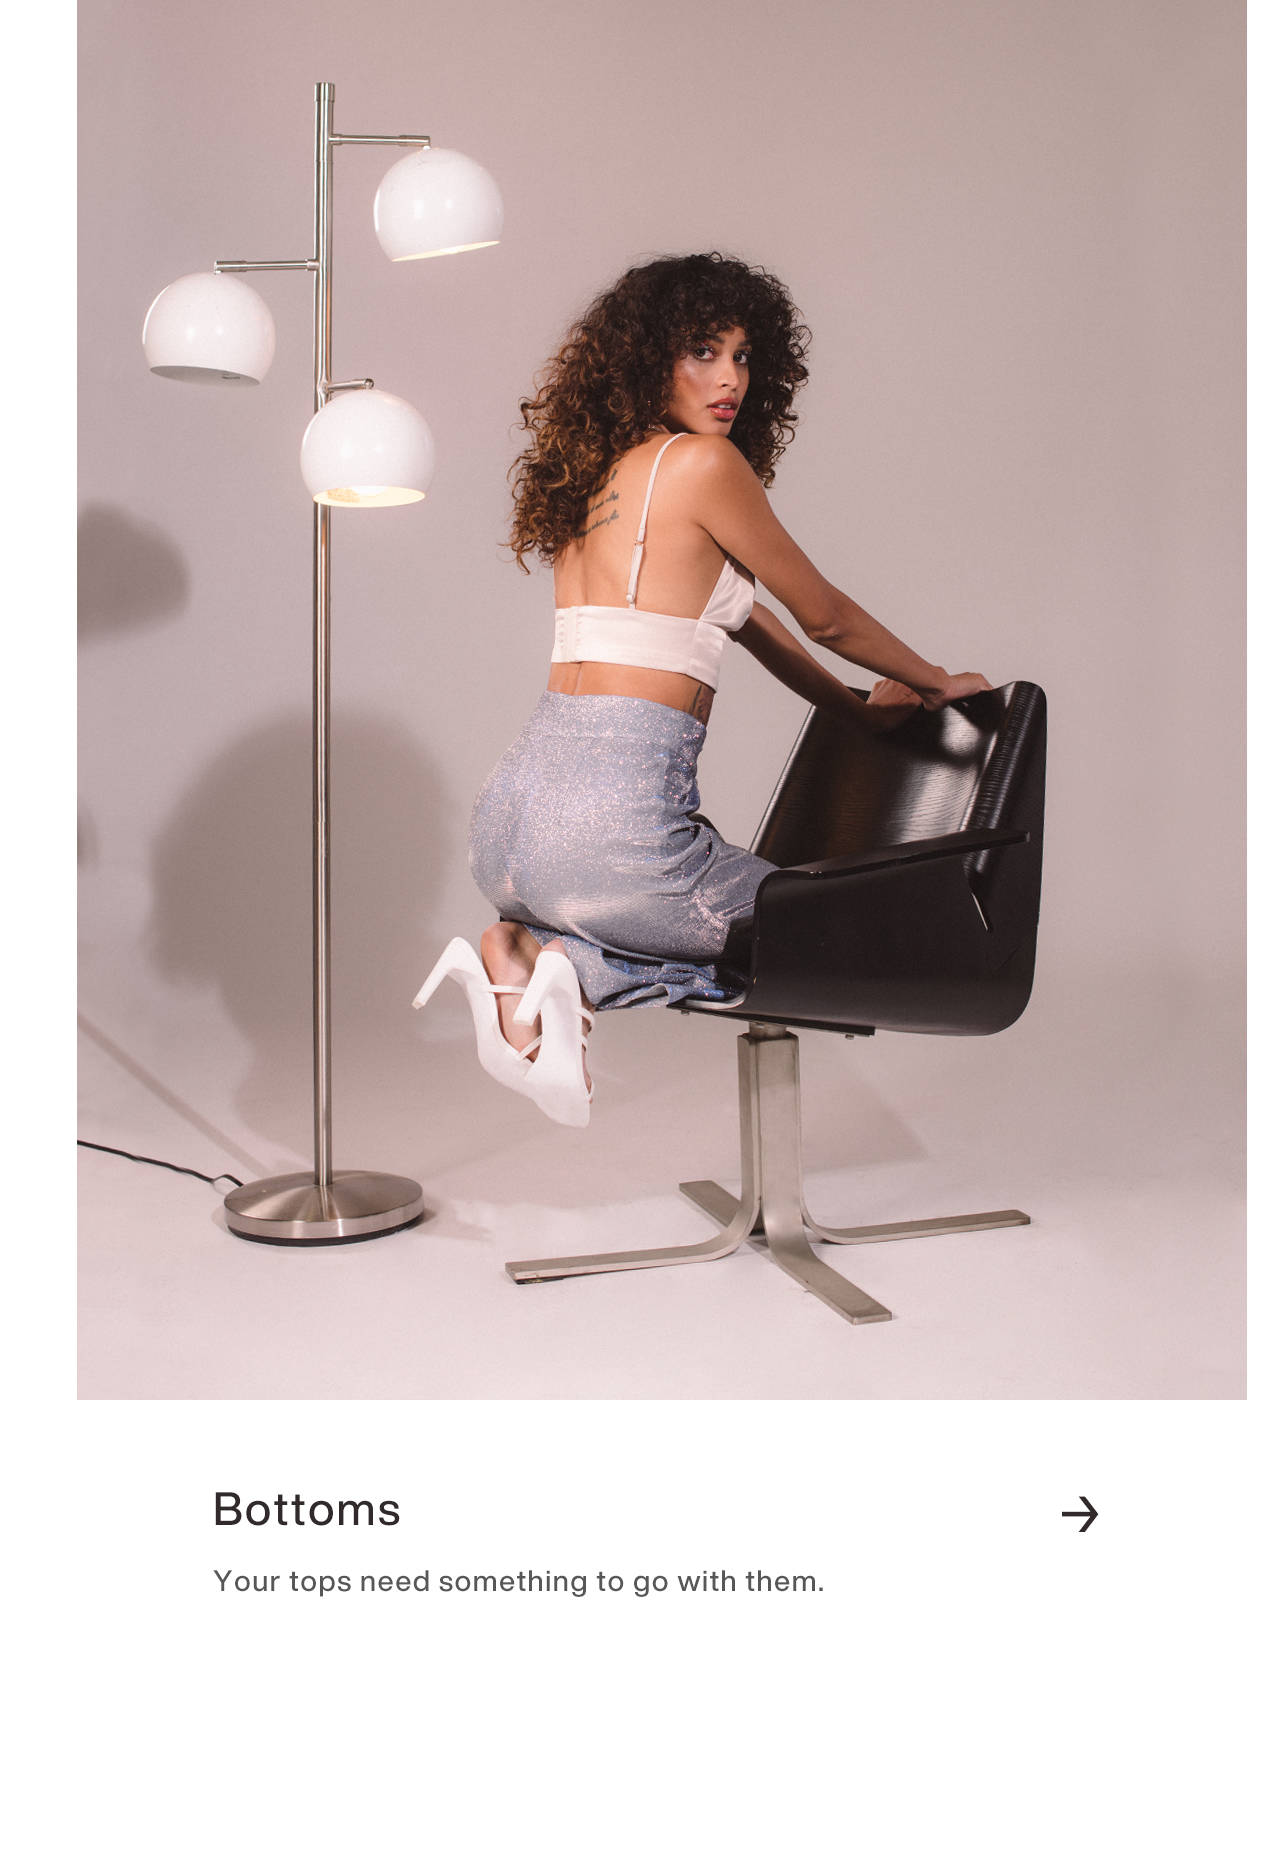 Bottoms: Your tops need something to go with them.